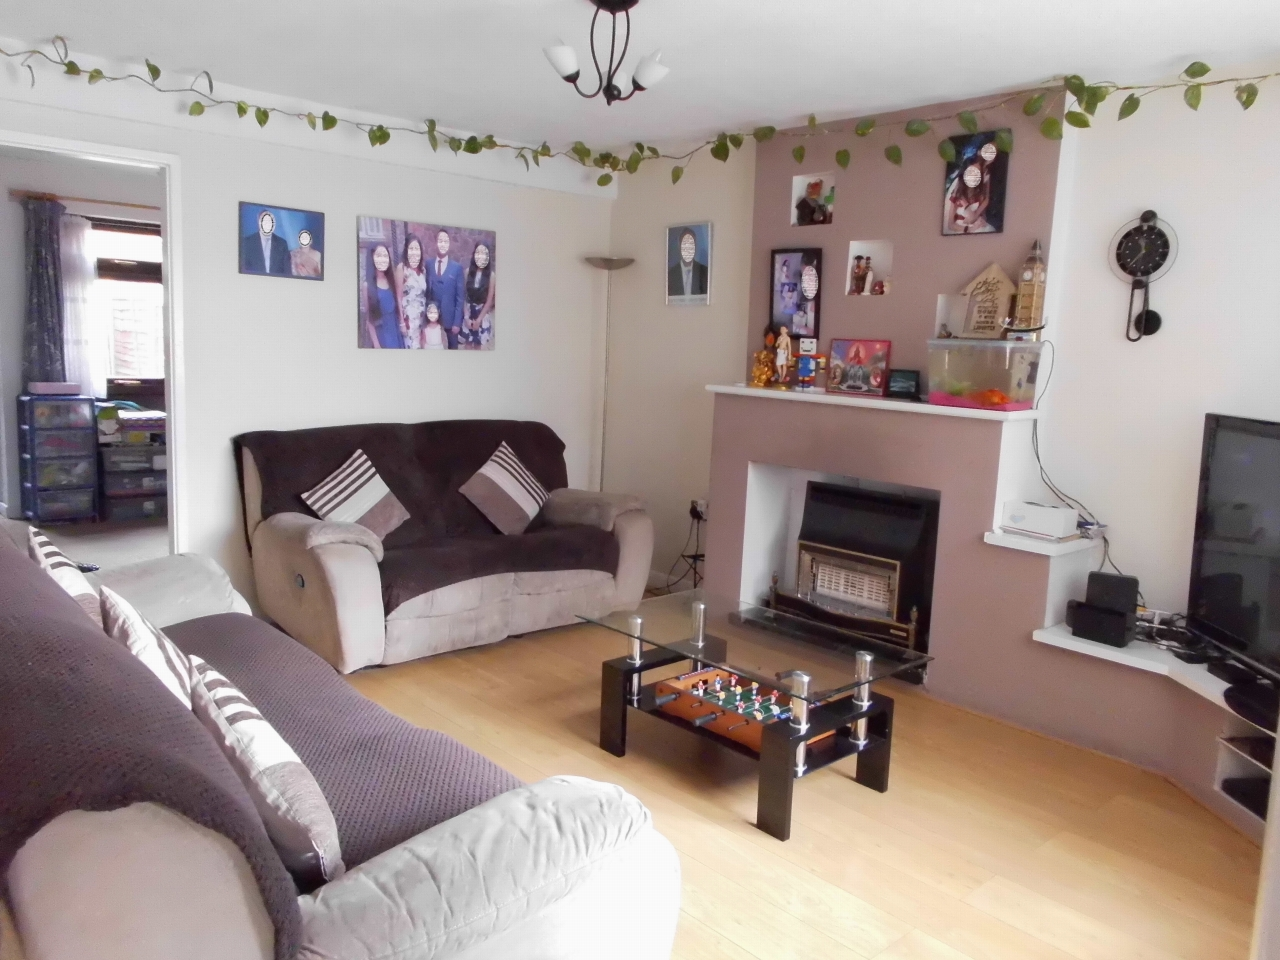 4 Bedroom Semi-detached House For Sale 38 Gilbert Close Image 2